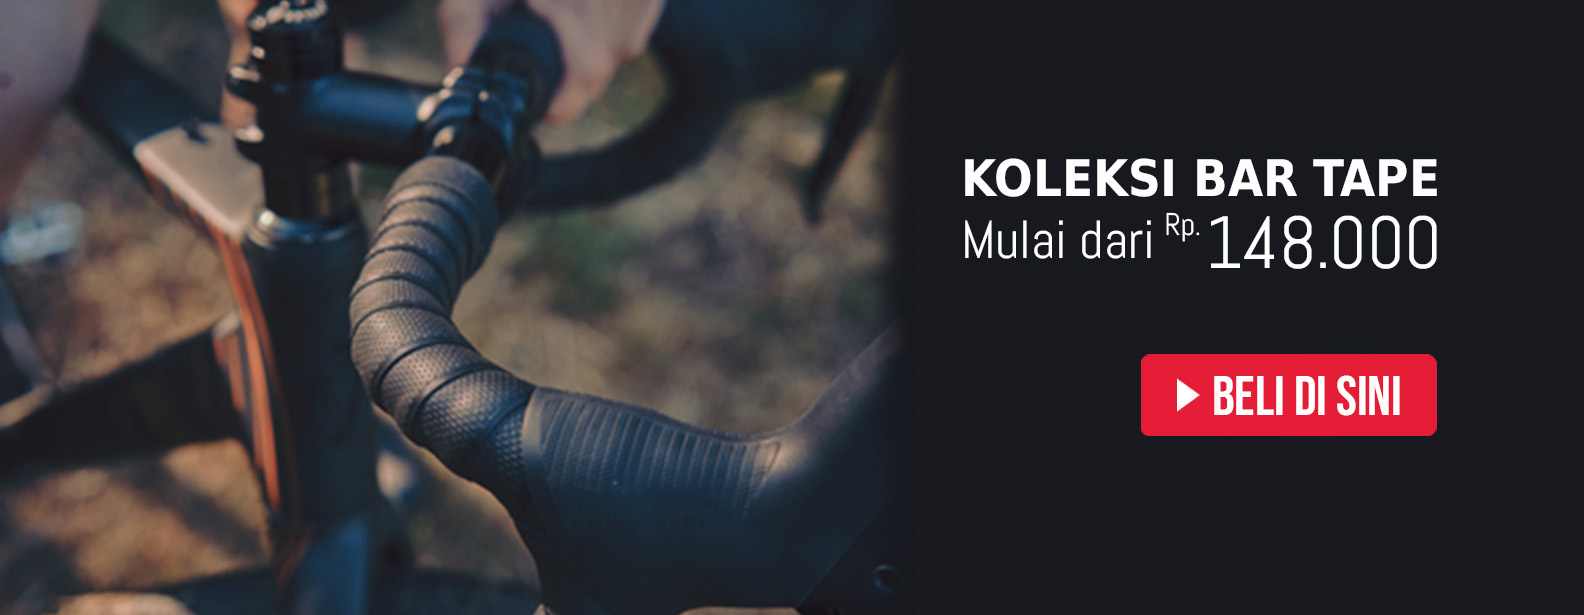 Koleksi Bar Tape